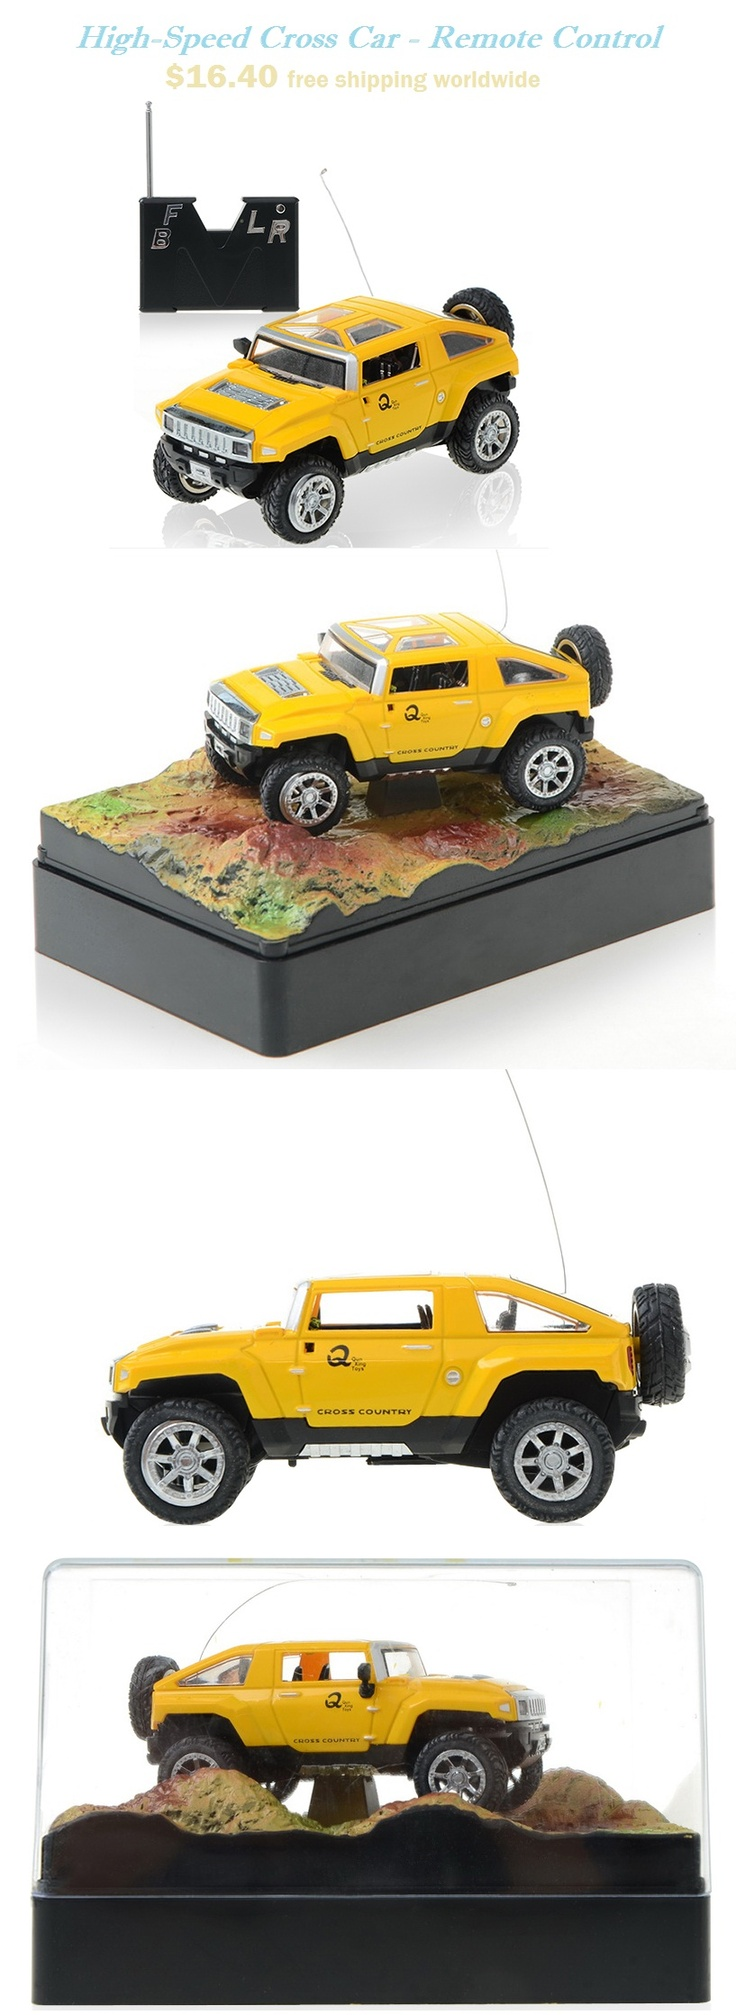 Off Road High-Speed Cross Car - Remote Control - Yellow #offroad #speed #car #remote #control $16.40